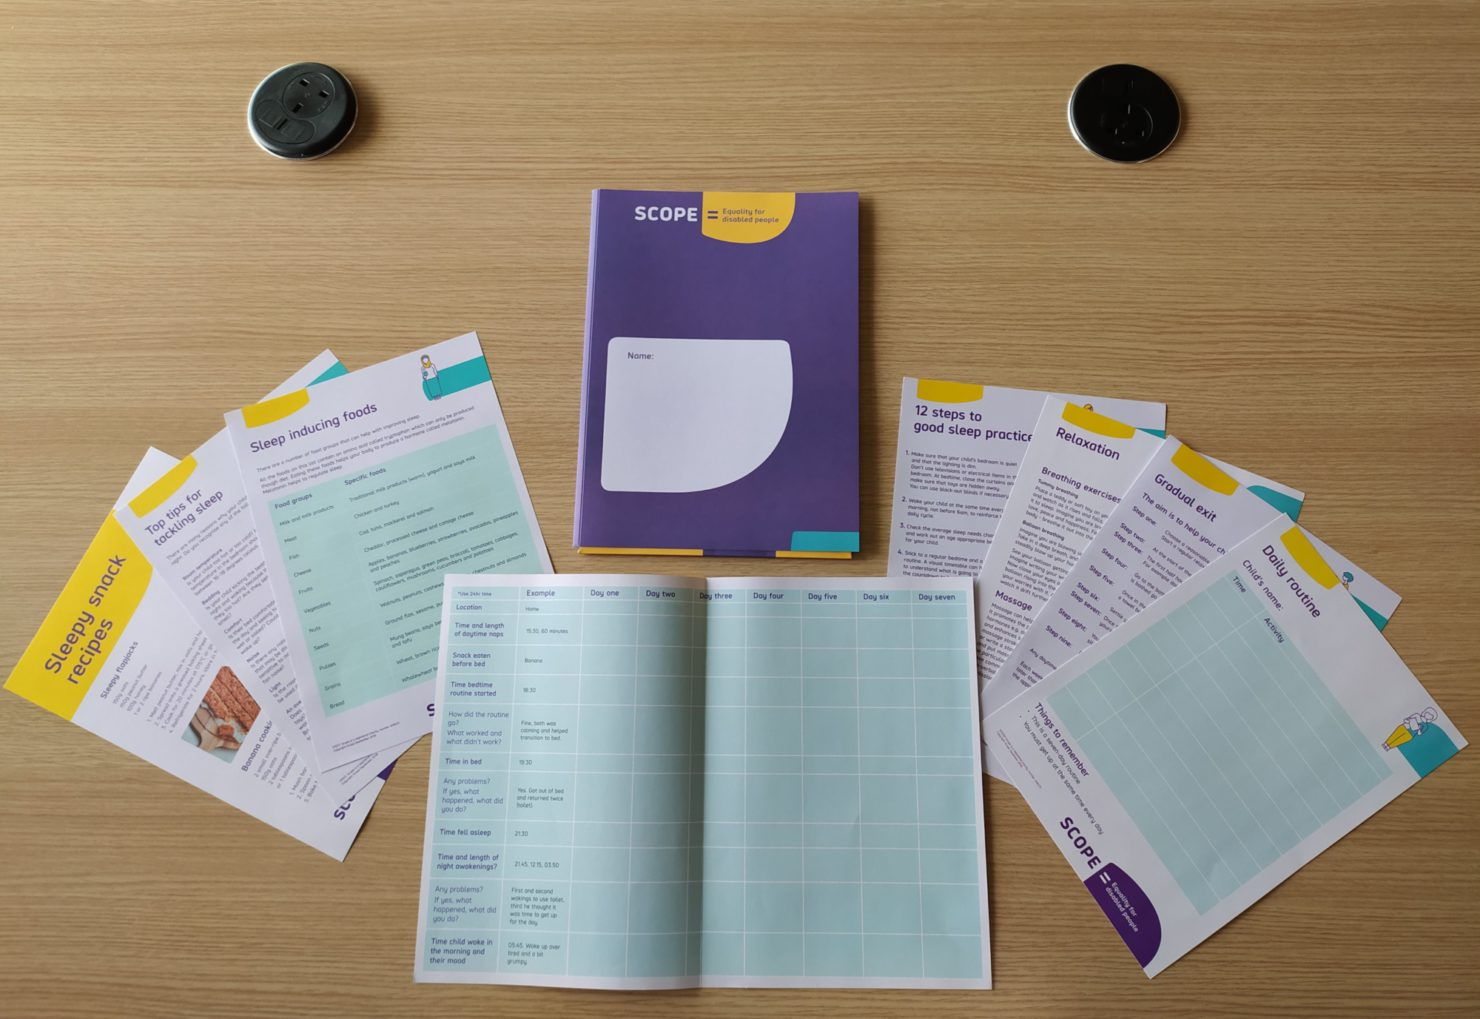 A photograph of some of Scope's physical printed resources documents